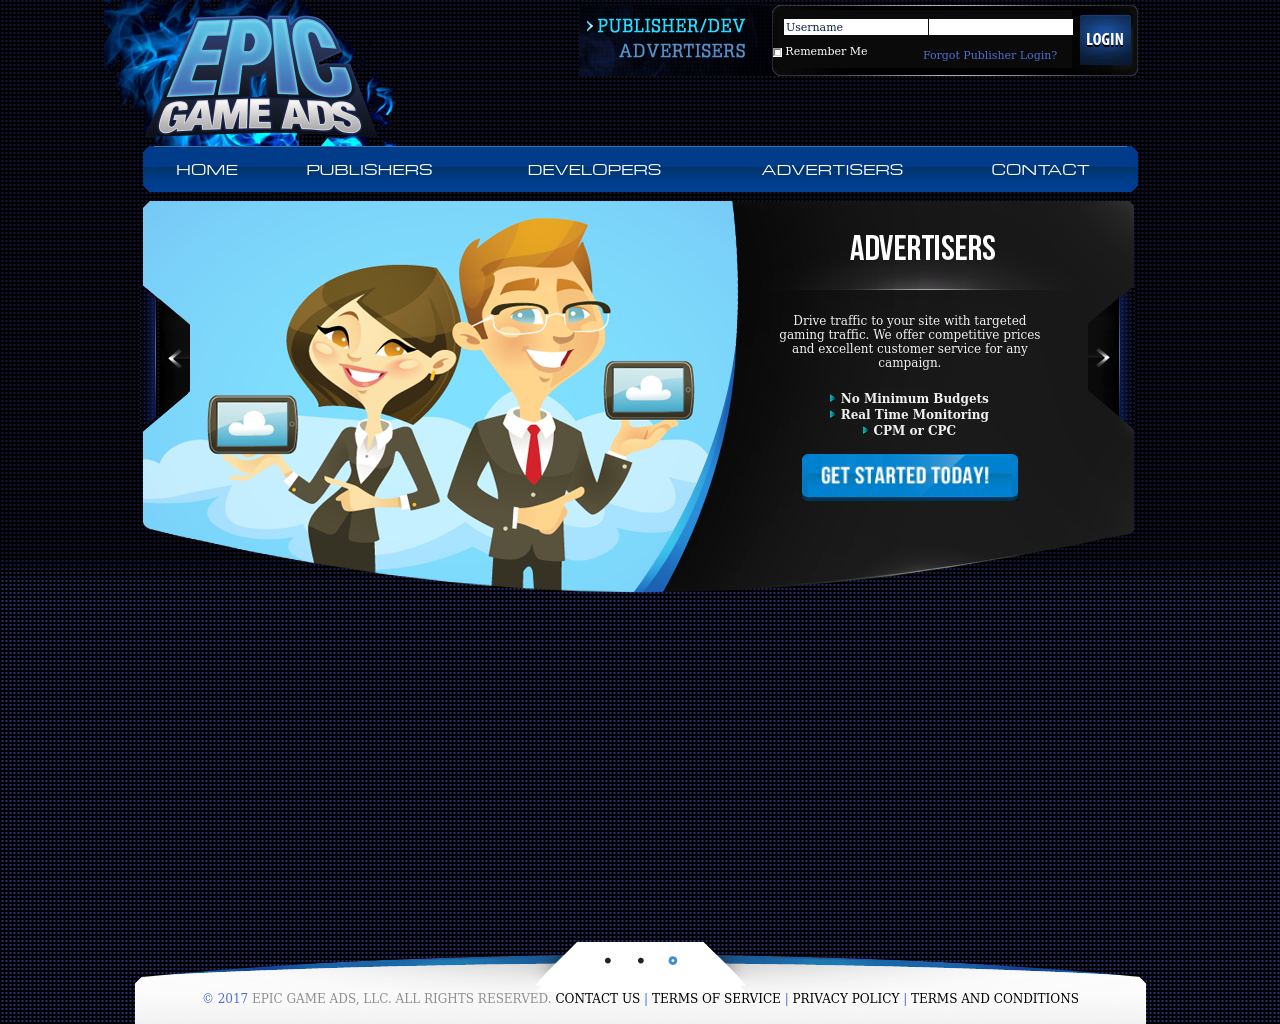 Epic-Game-Ads-Advertising-Reviews-Pricing